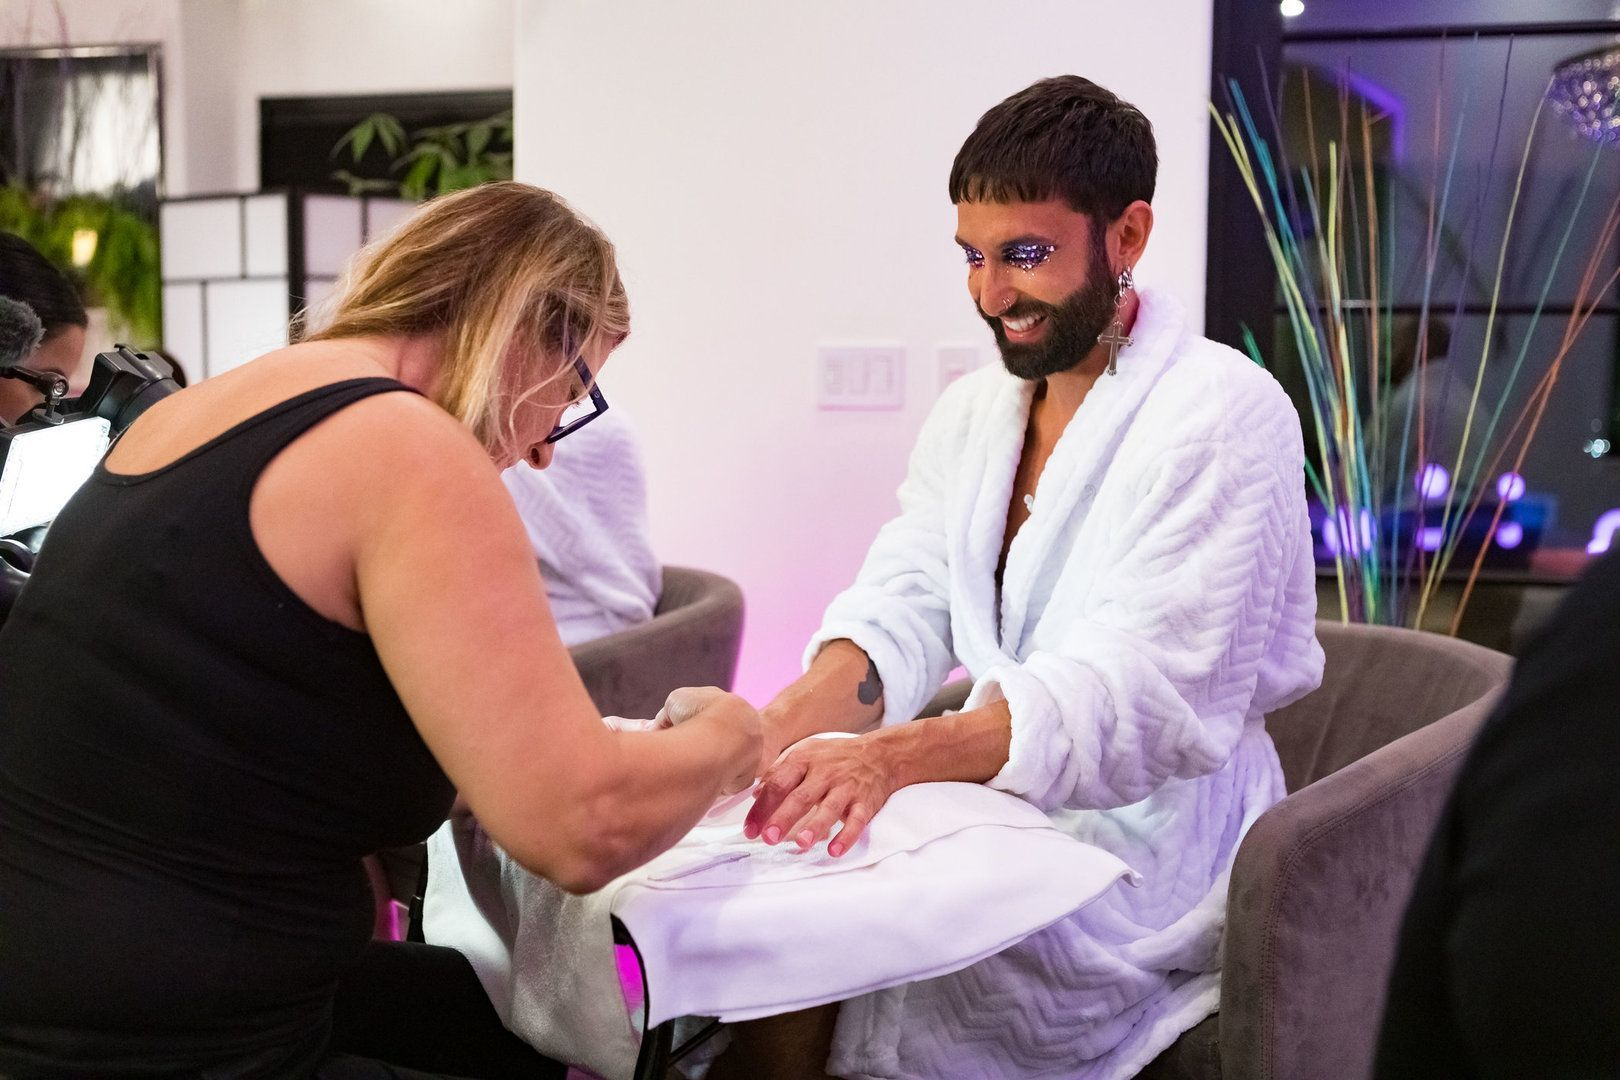 Dragqueen-Spa: Wellnessabend mit Heidi, Bill und Conchita